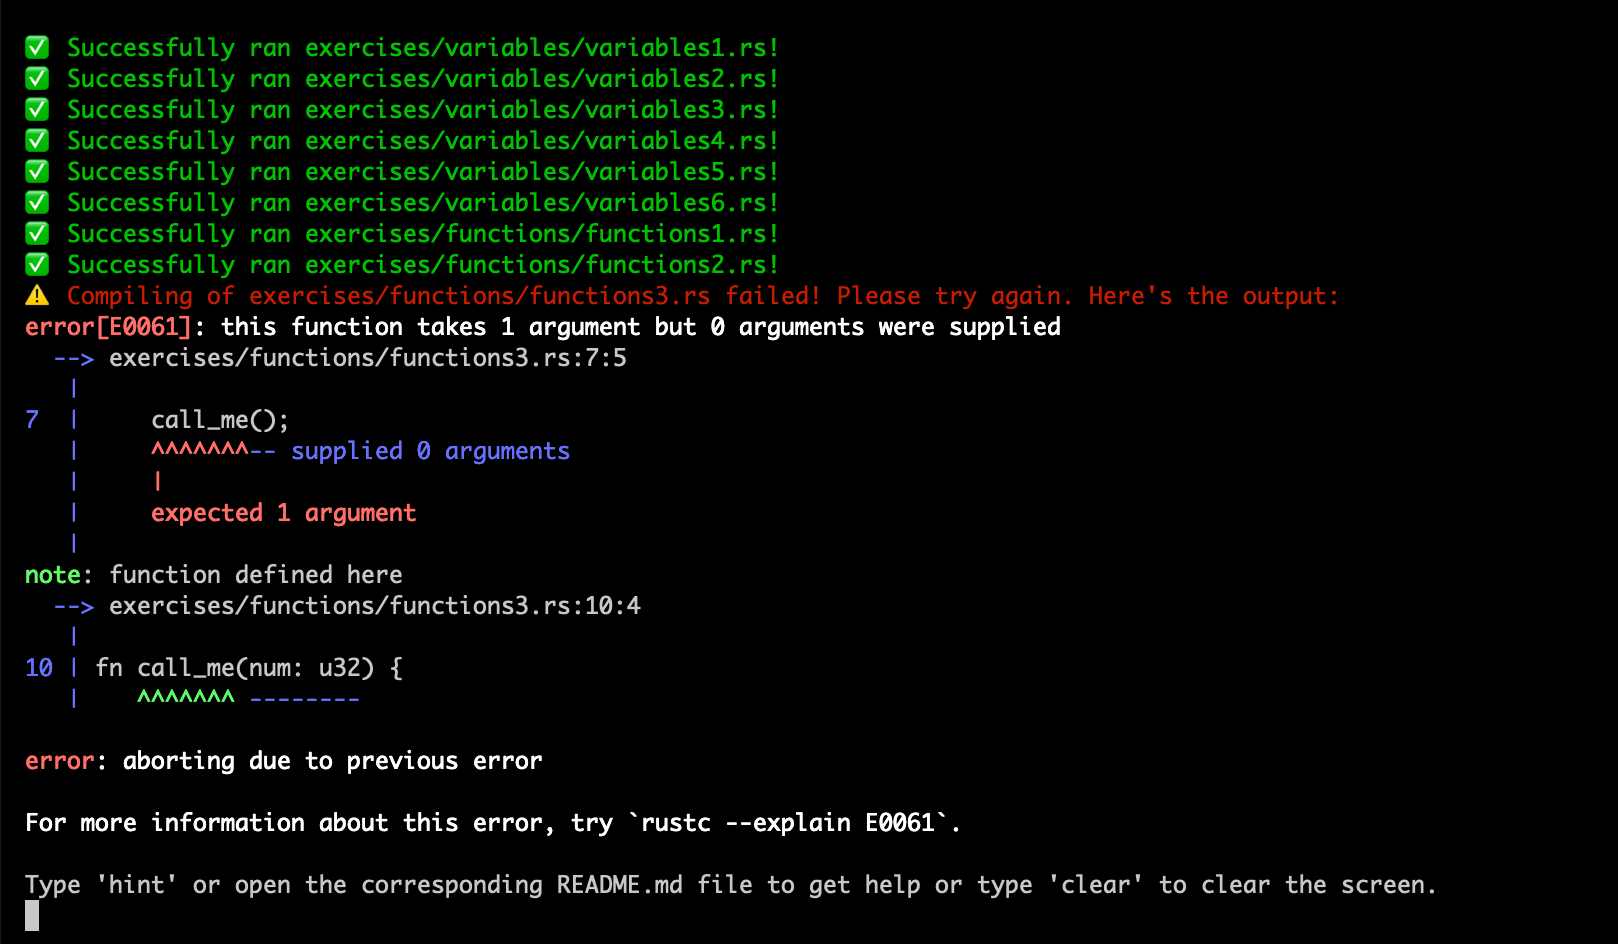 A screenshot of the rustlings app output with few successfull exercise prompts and a compiler error